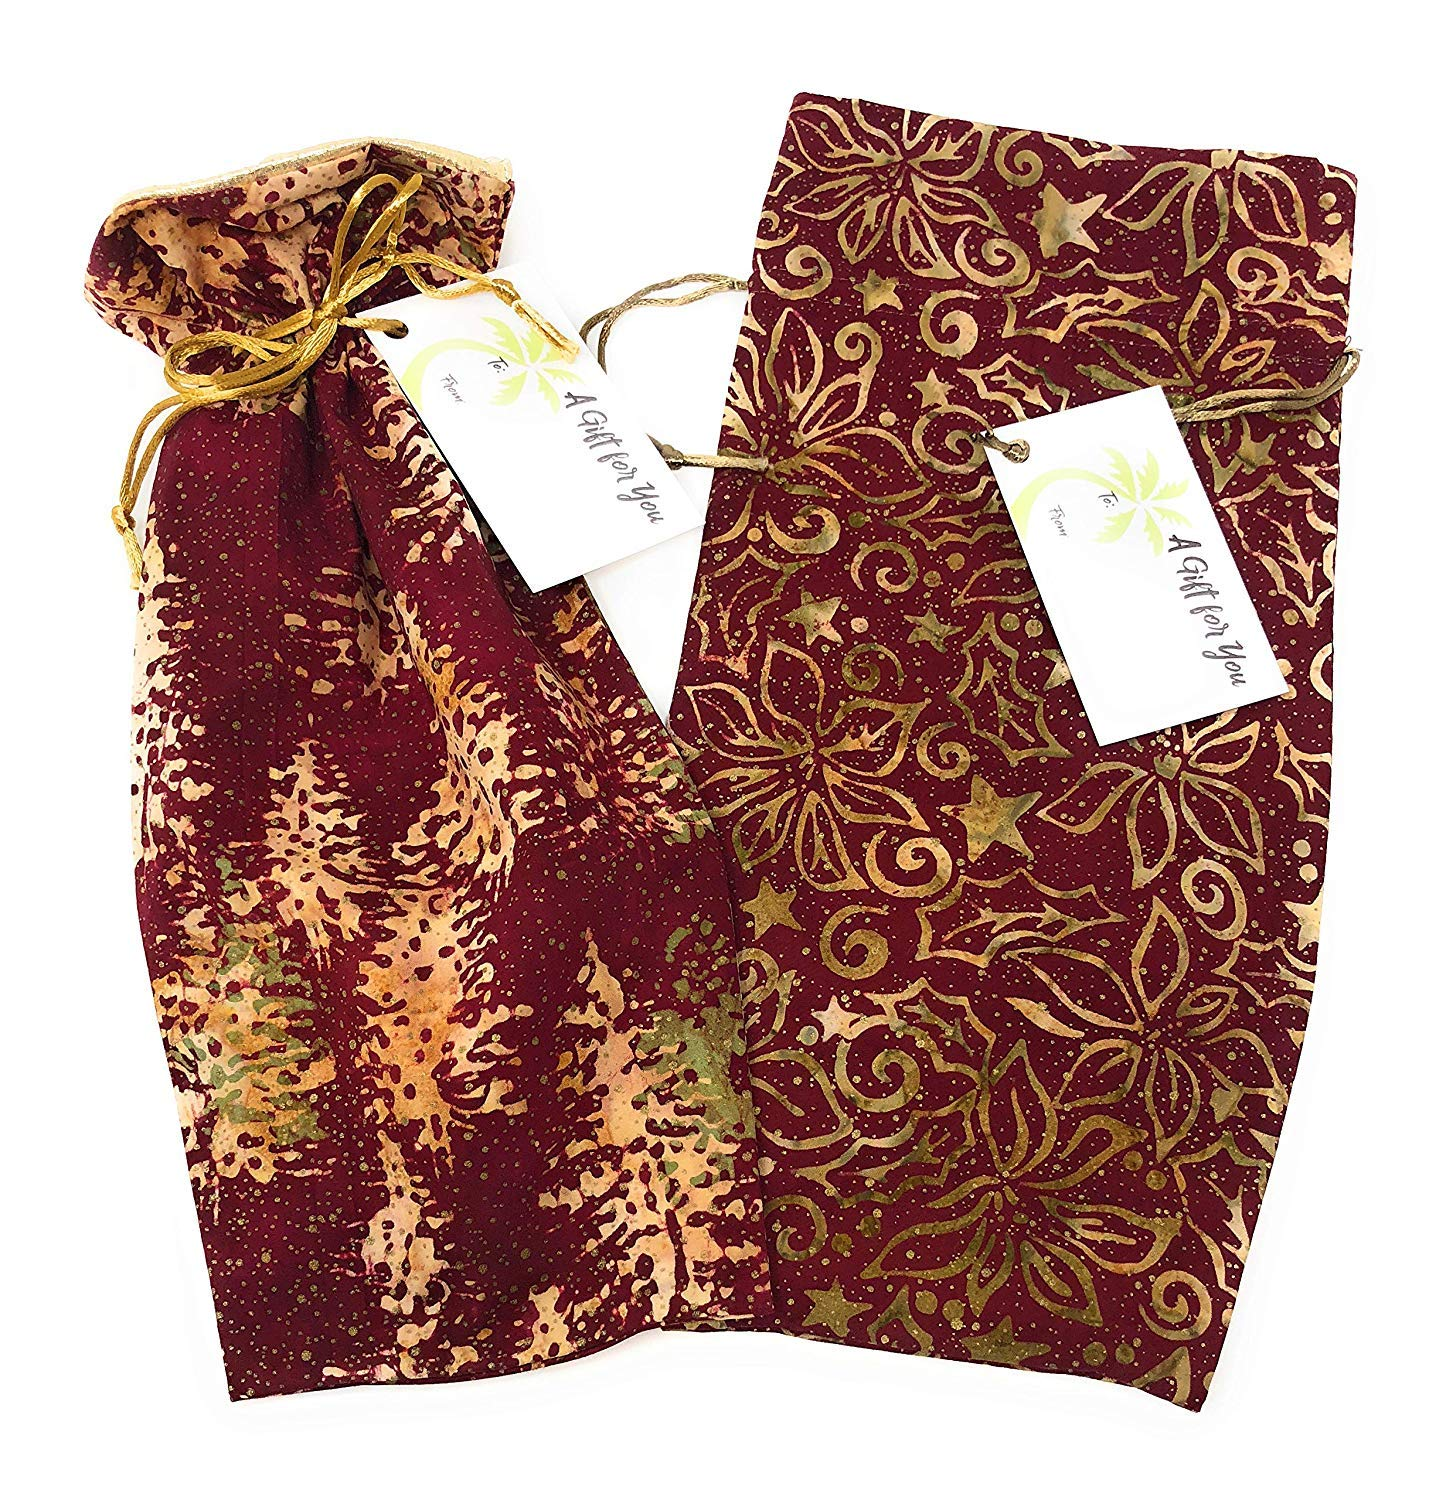 """Medium 13.25/""""x6 Eco-Friendly Alternative to Paper Giftwrap for Wine Bottle 2-Pack Bali Holiday Fabric- Reusable Drawstring Gift Bag Christmas Fully-Lined Lam/é Cotton Cloth Winter Holidays"""